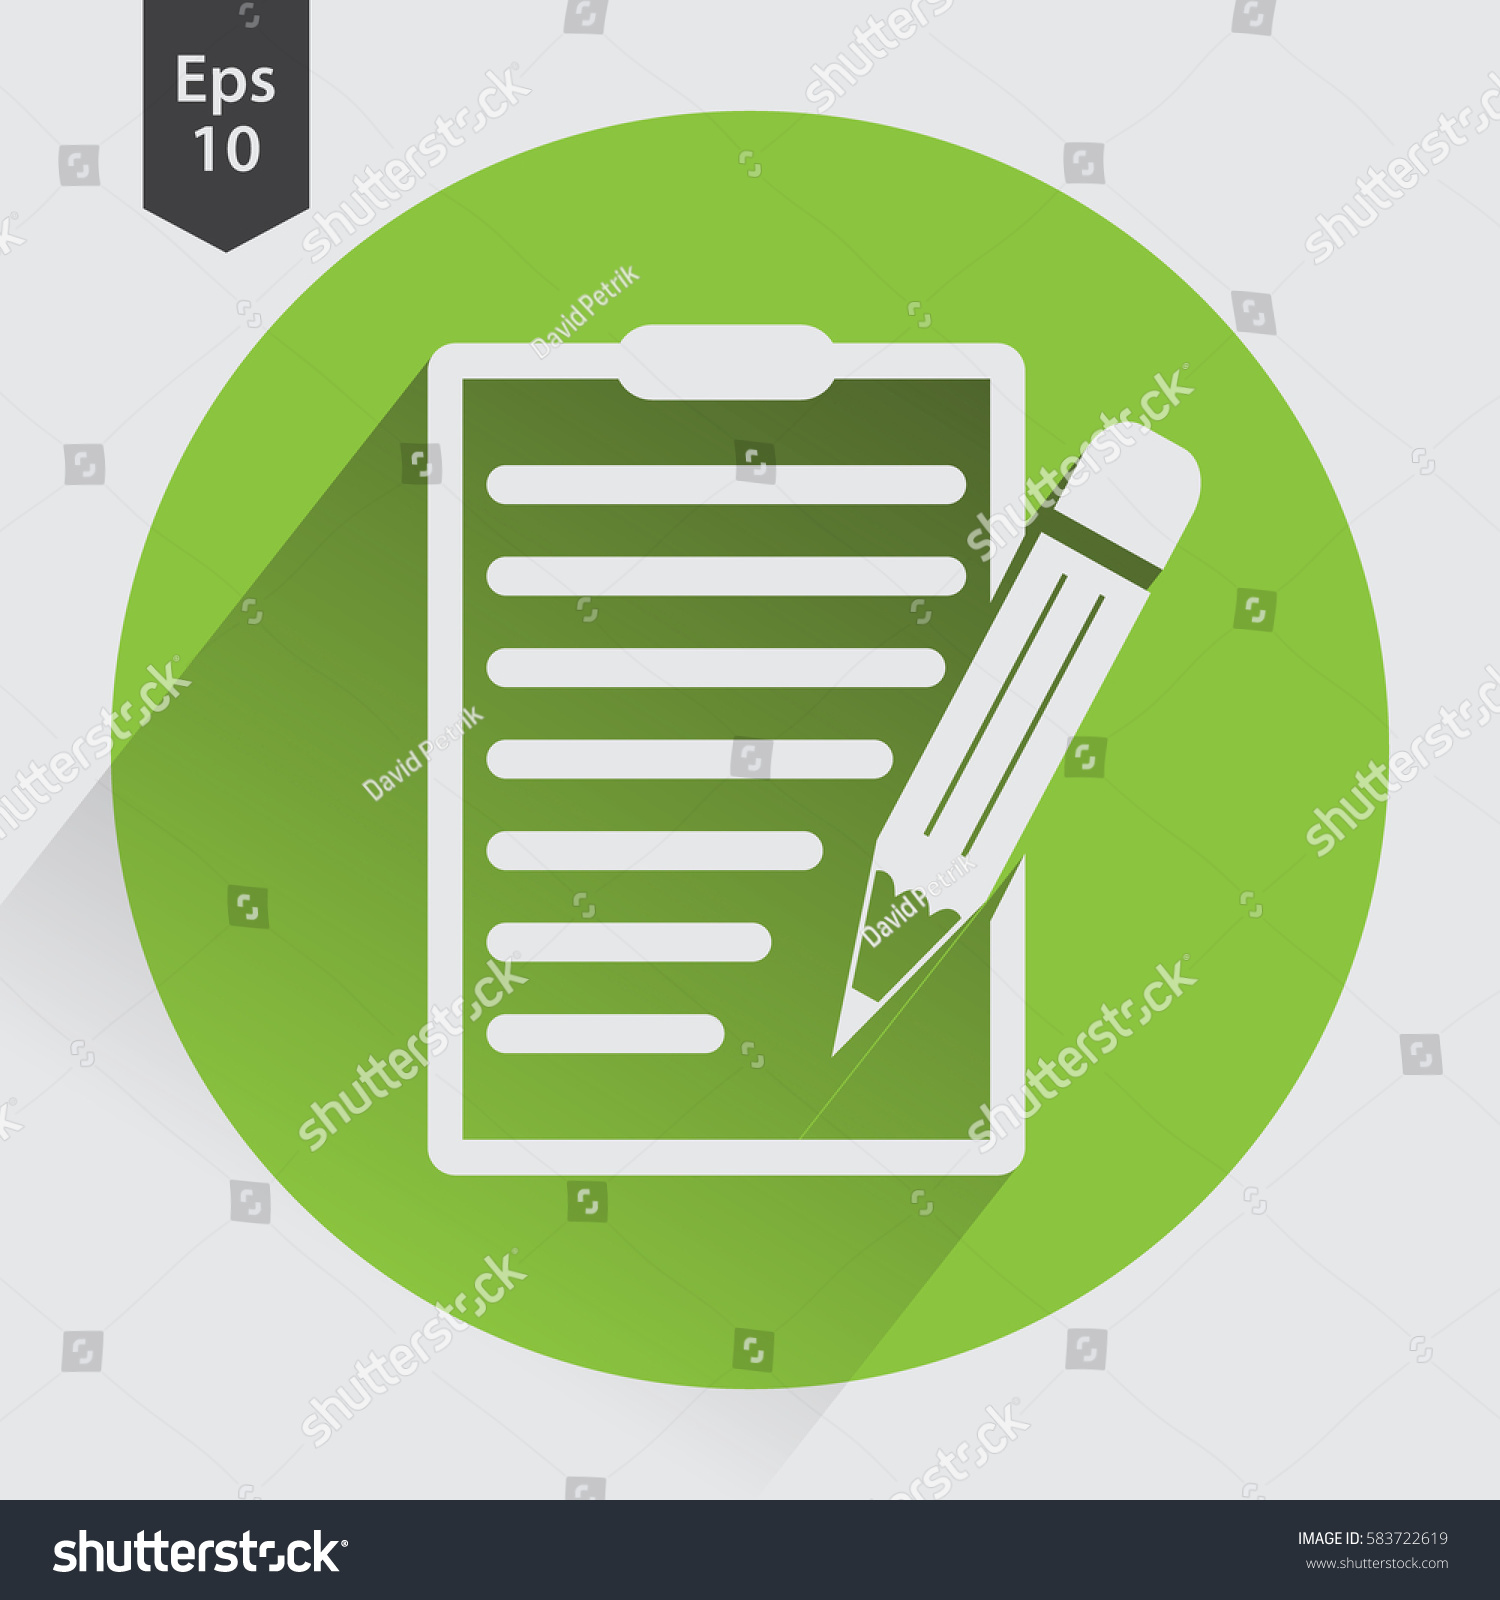 Notepad symbol simple flat icon paper stock vector 583722619 notepad symbol simple flat icon of paper and pen notebook with some text biocorpaavc Choice Image